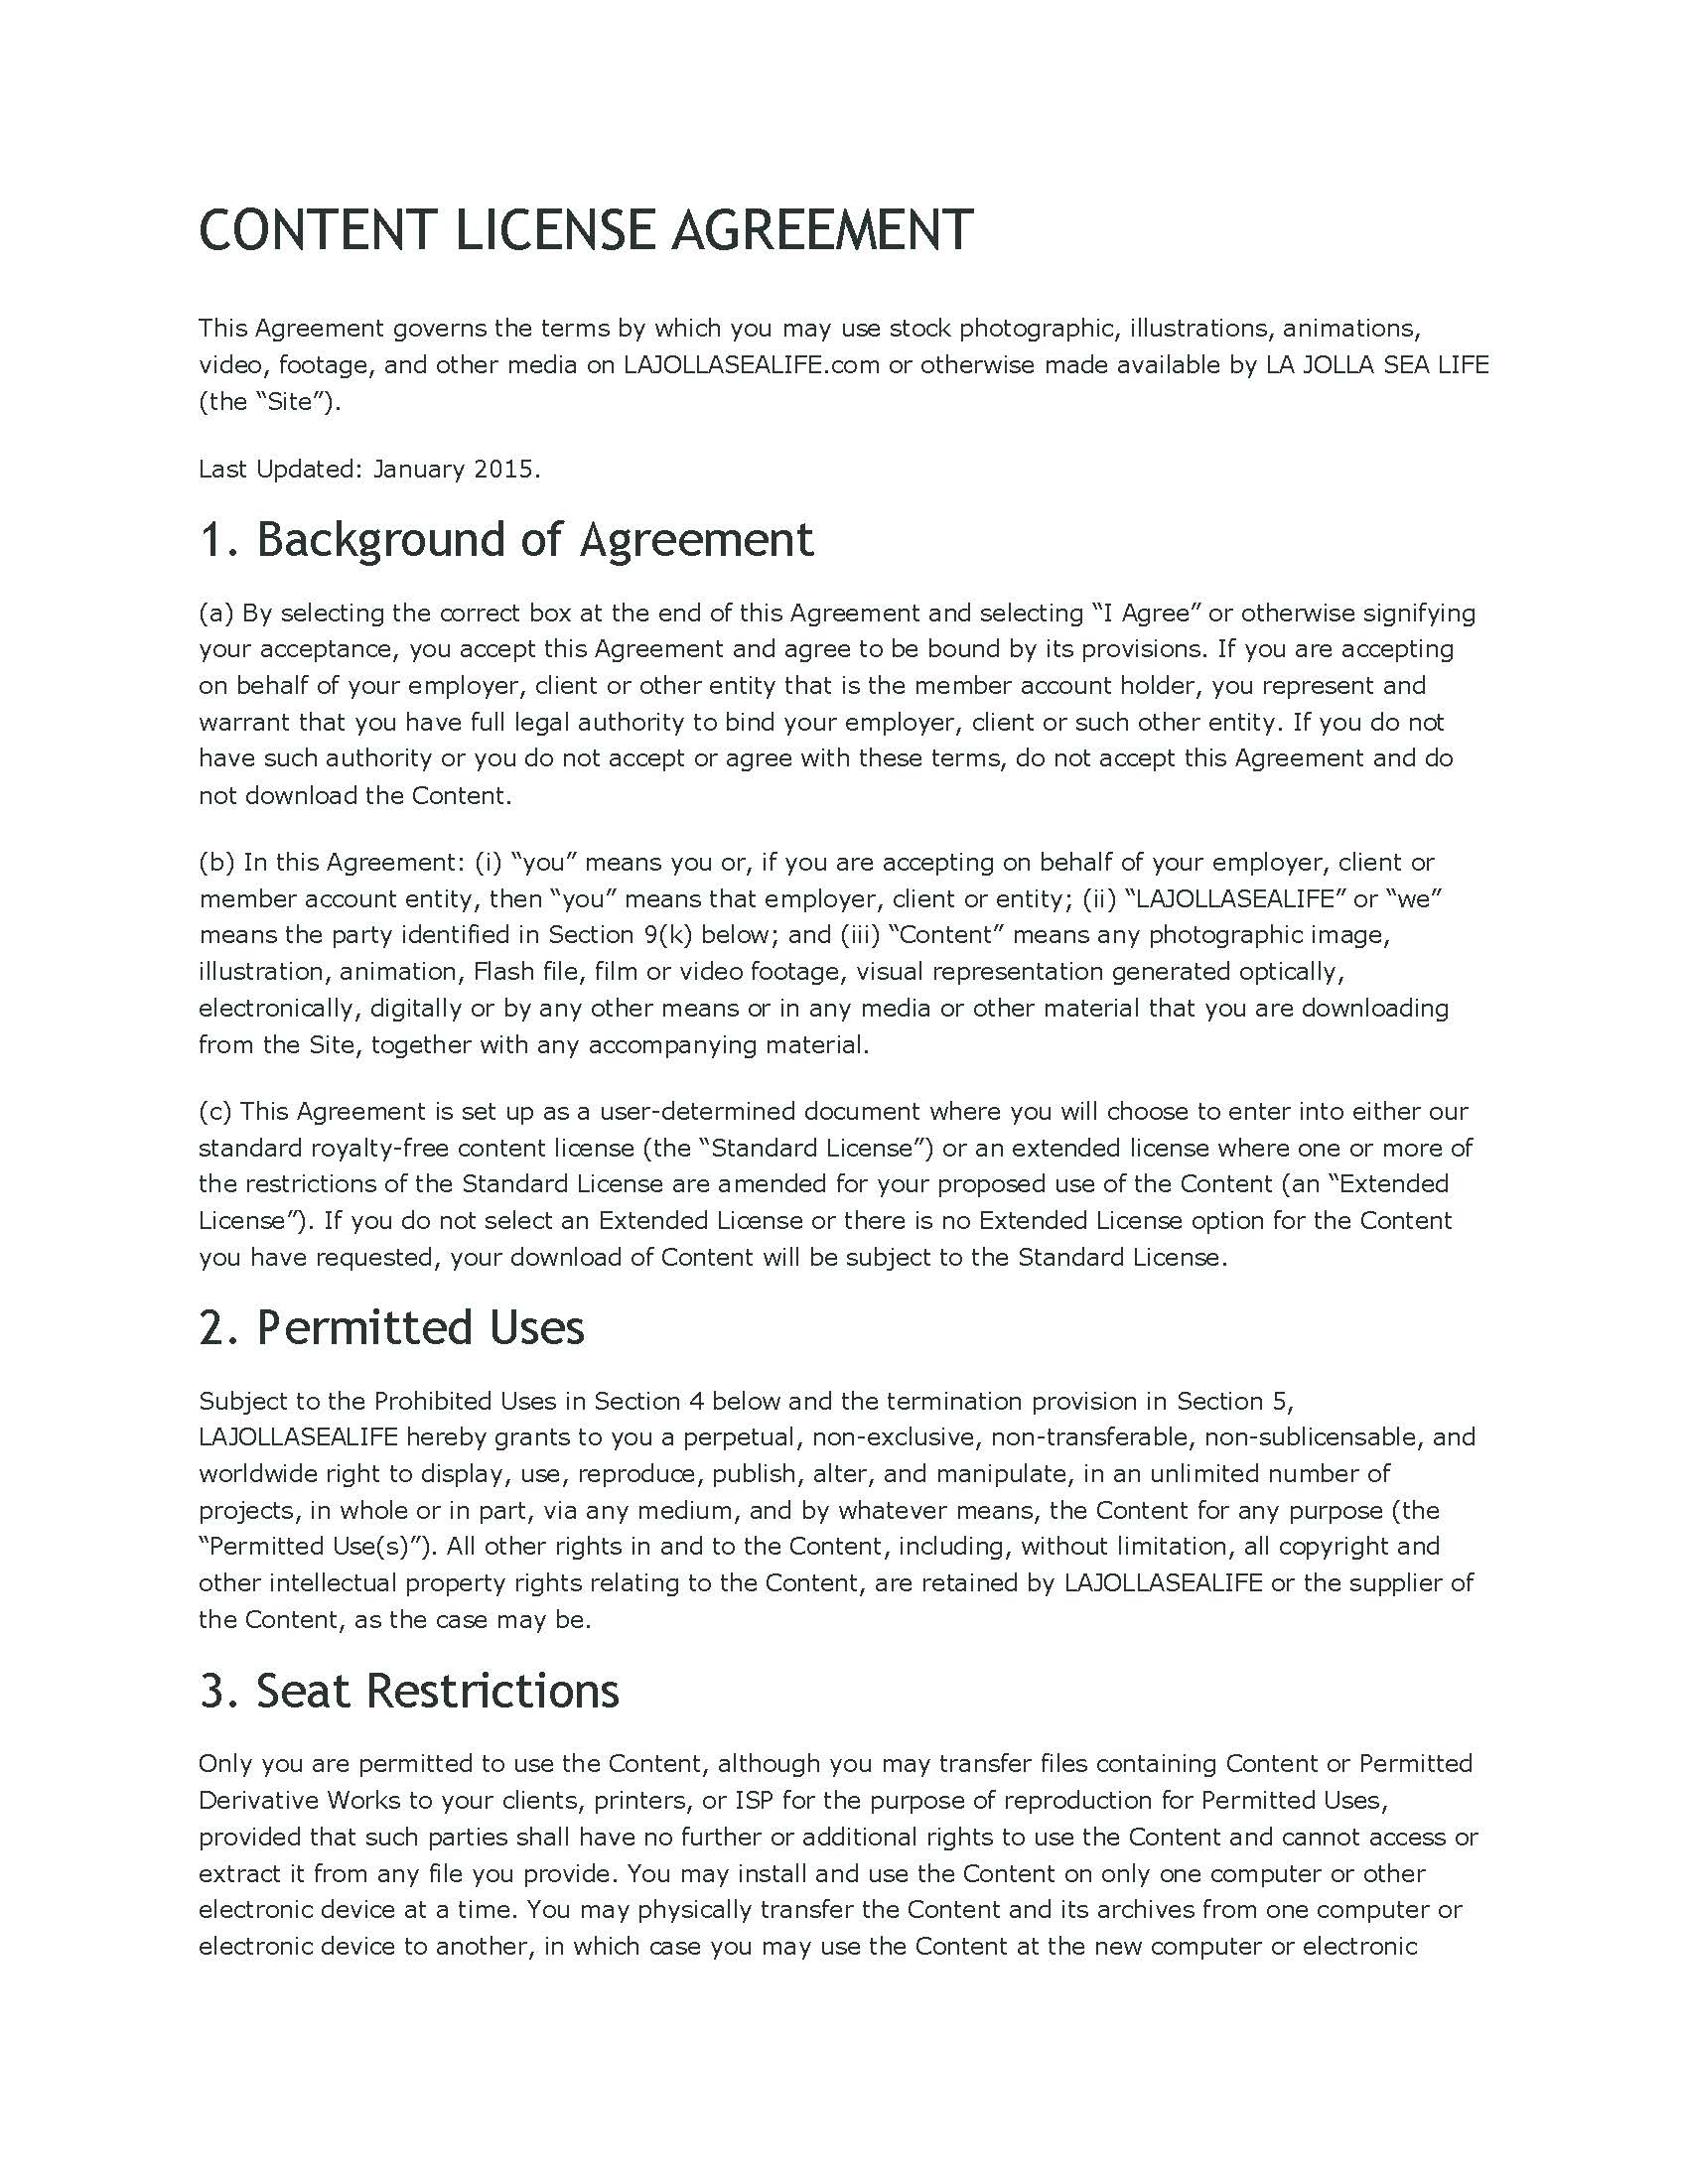 CONTENT LICENSE AGREEMENT PAGE ONE_Page_1